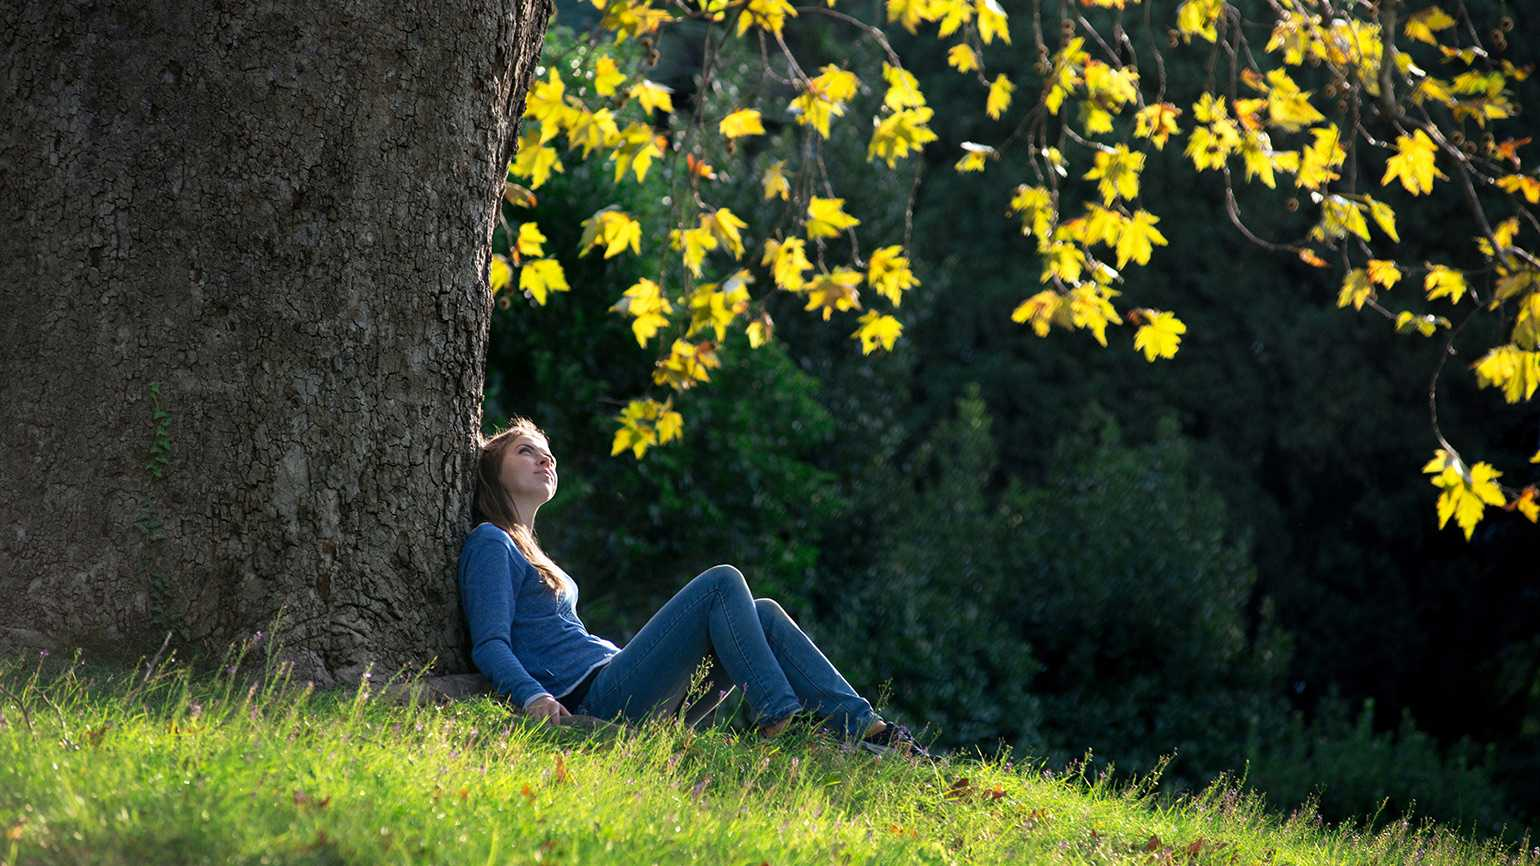 A young woman gazes skyward while sitting under a tree